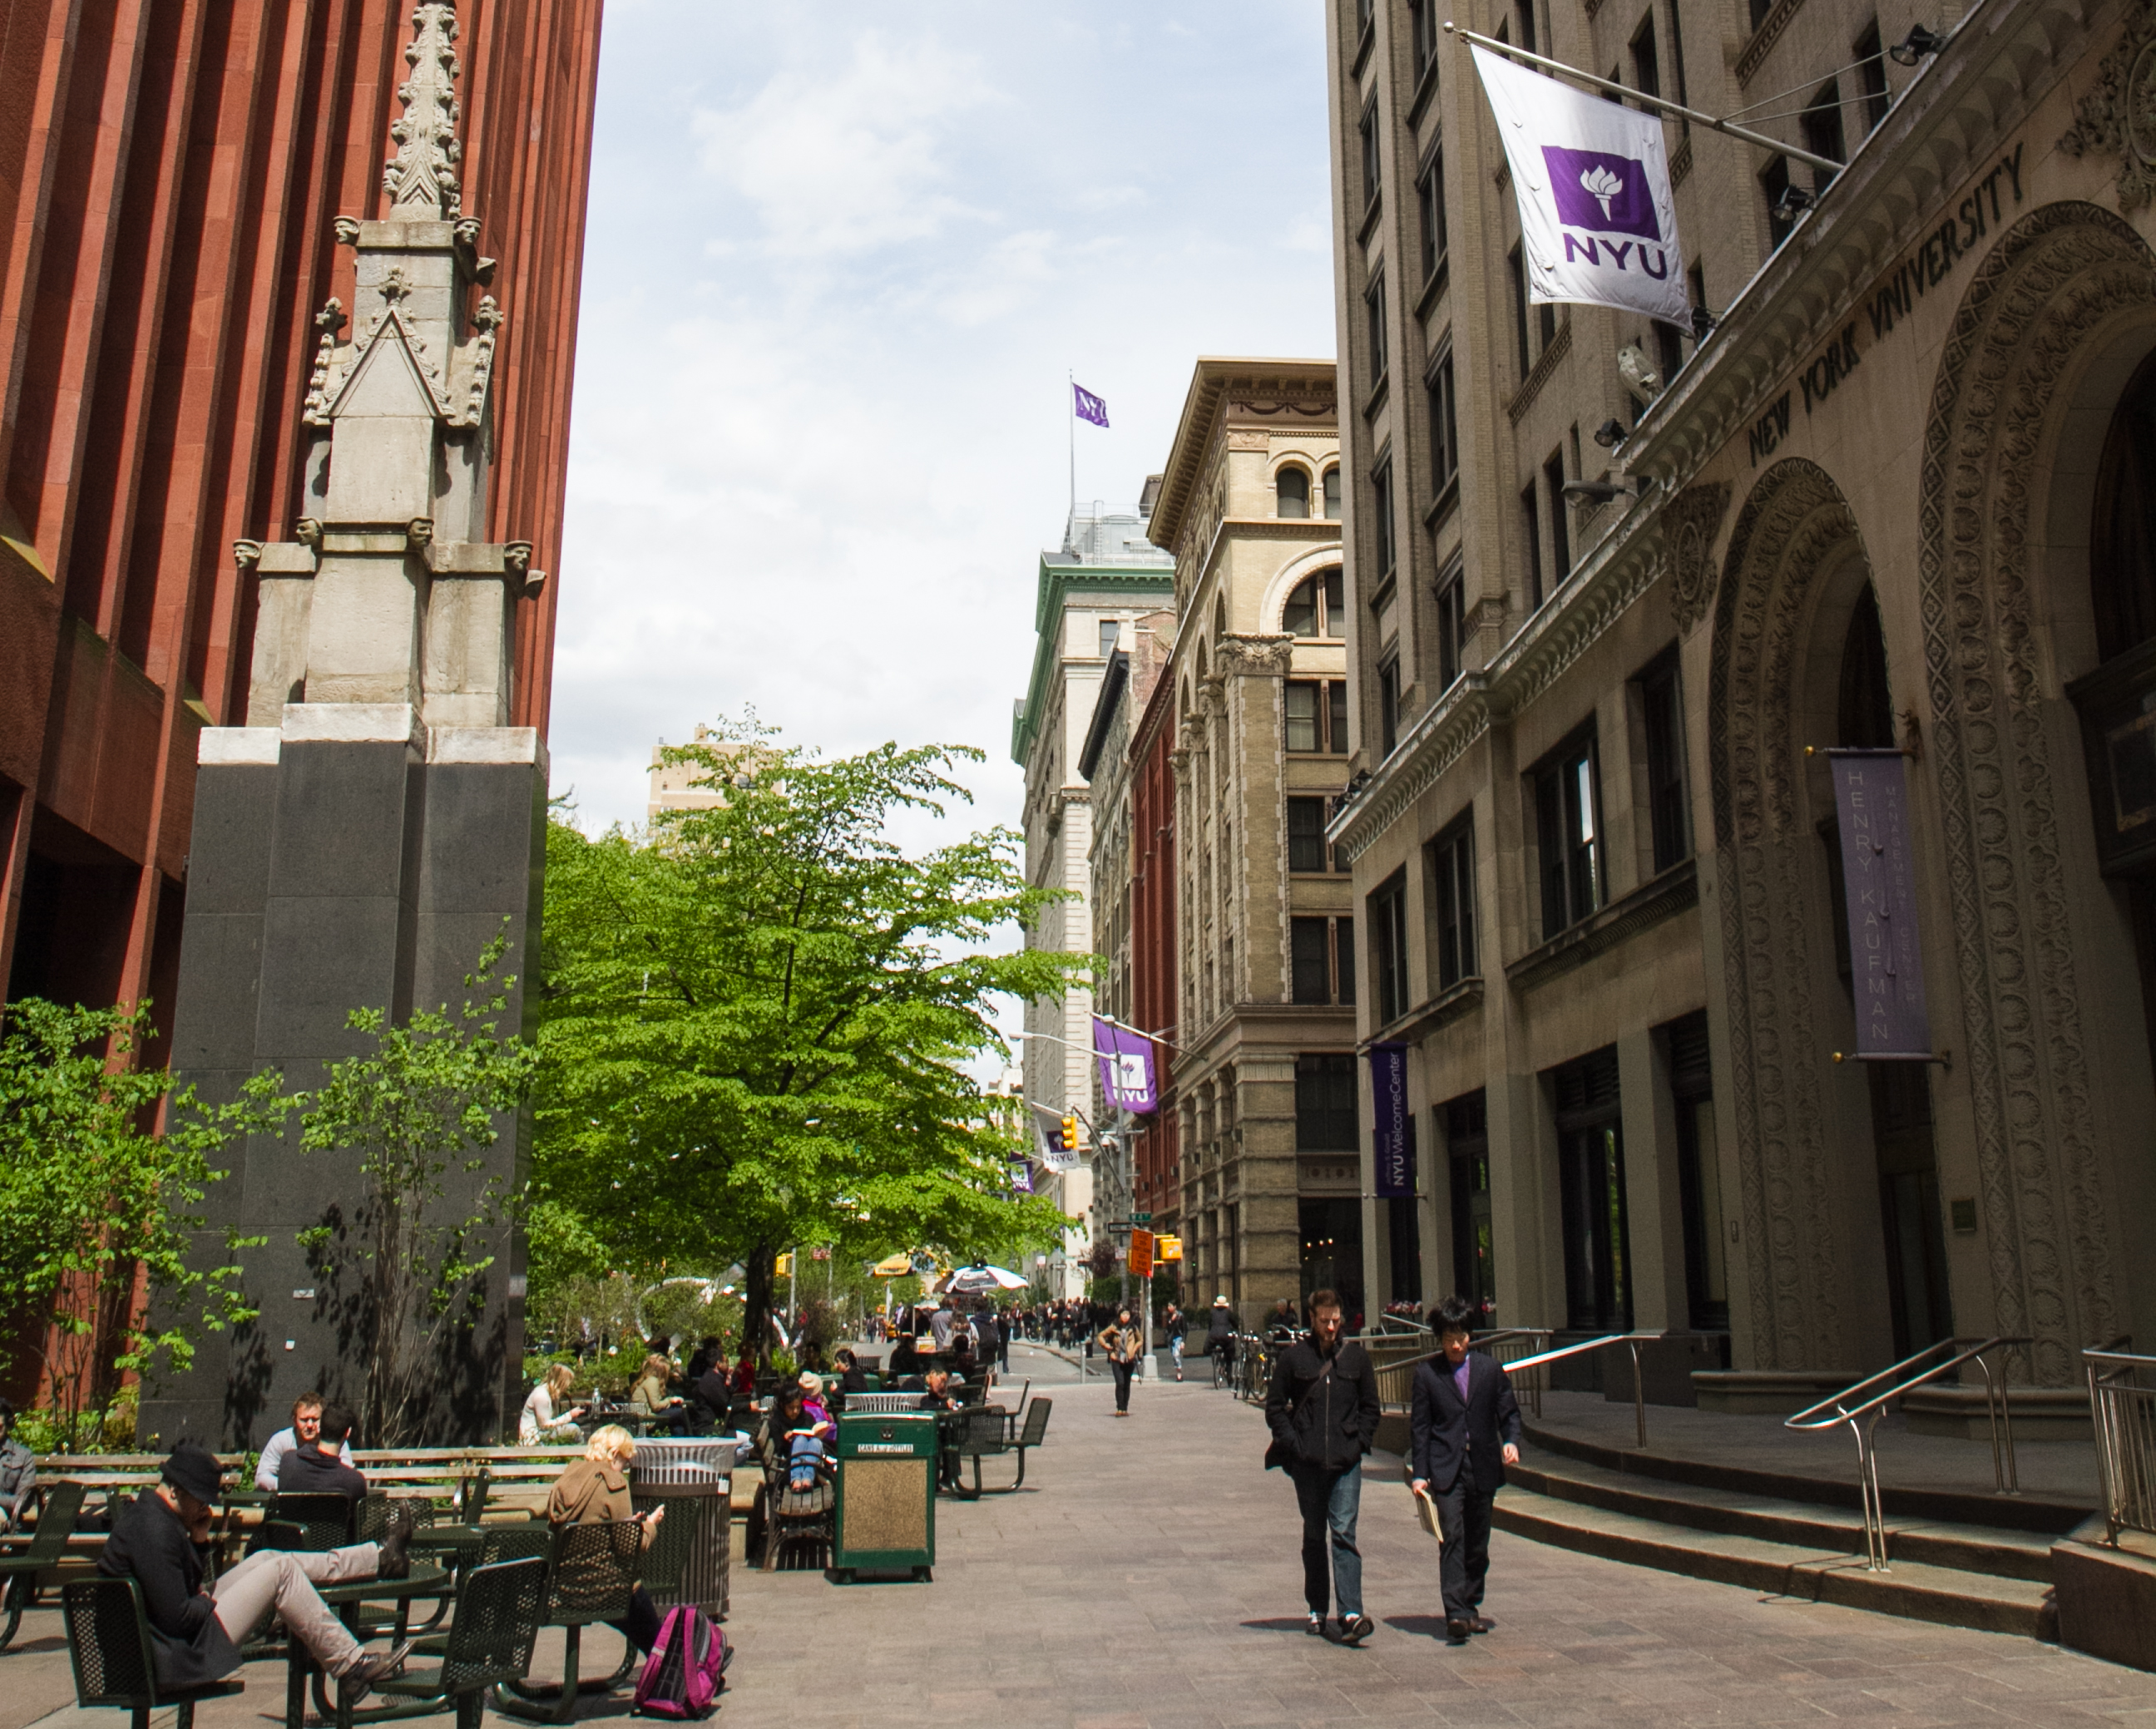 People walk on the NYU campus in New York City on April 24, 2012. (Benjamin Chasteen/The Epoch Times)